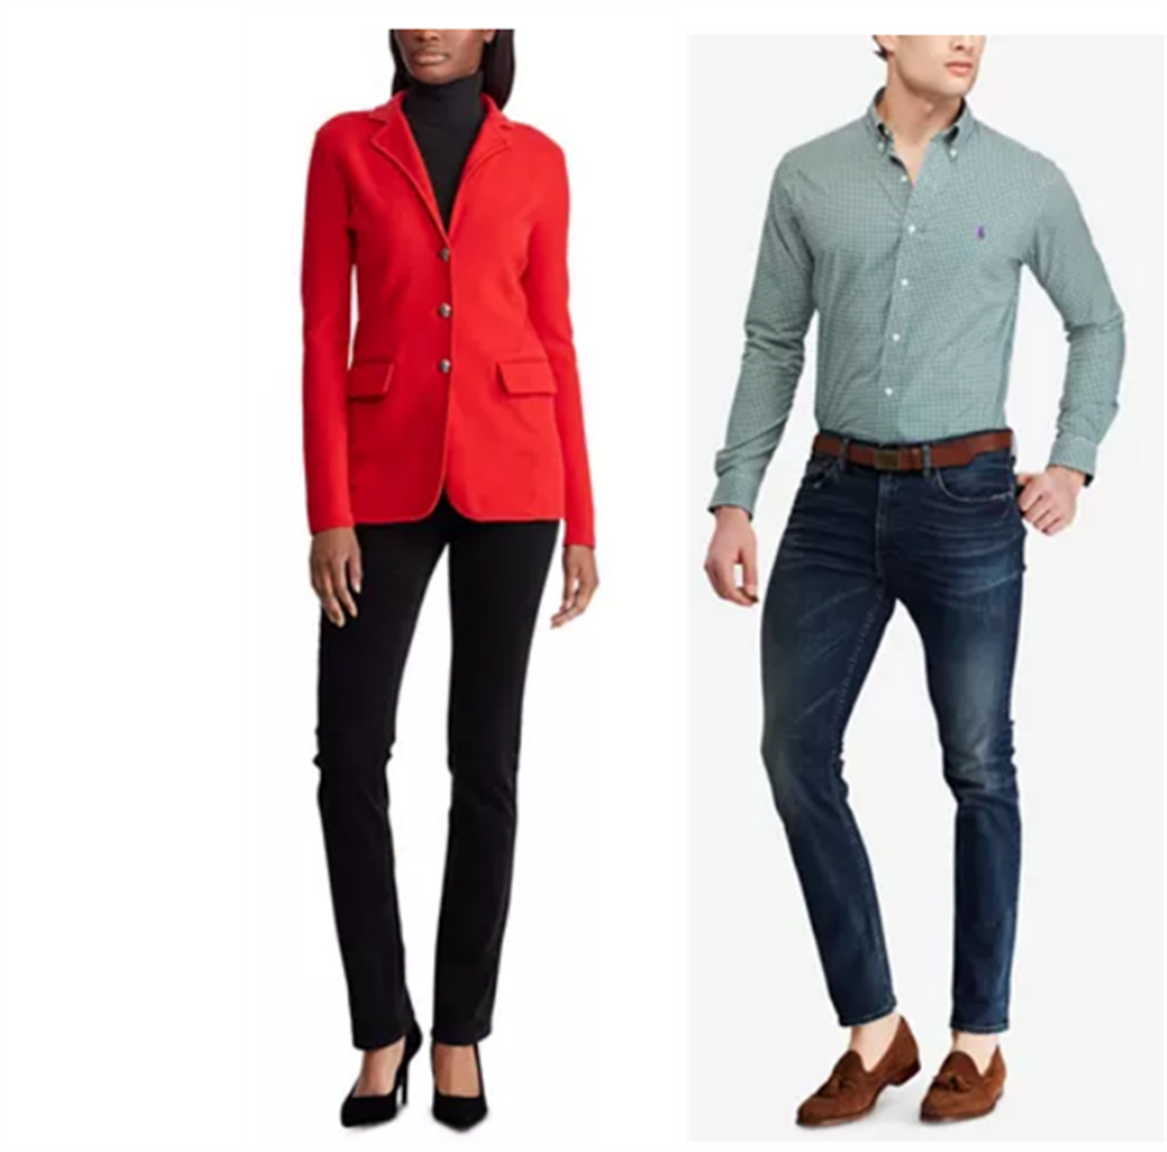 Ralph Lauren – Up to 70% Off Clearance + Extra 20% Off!